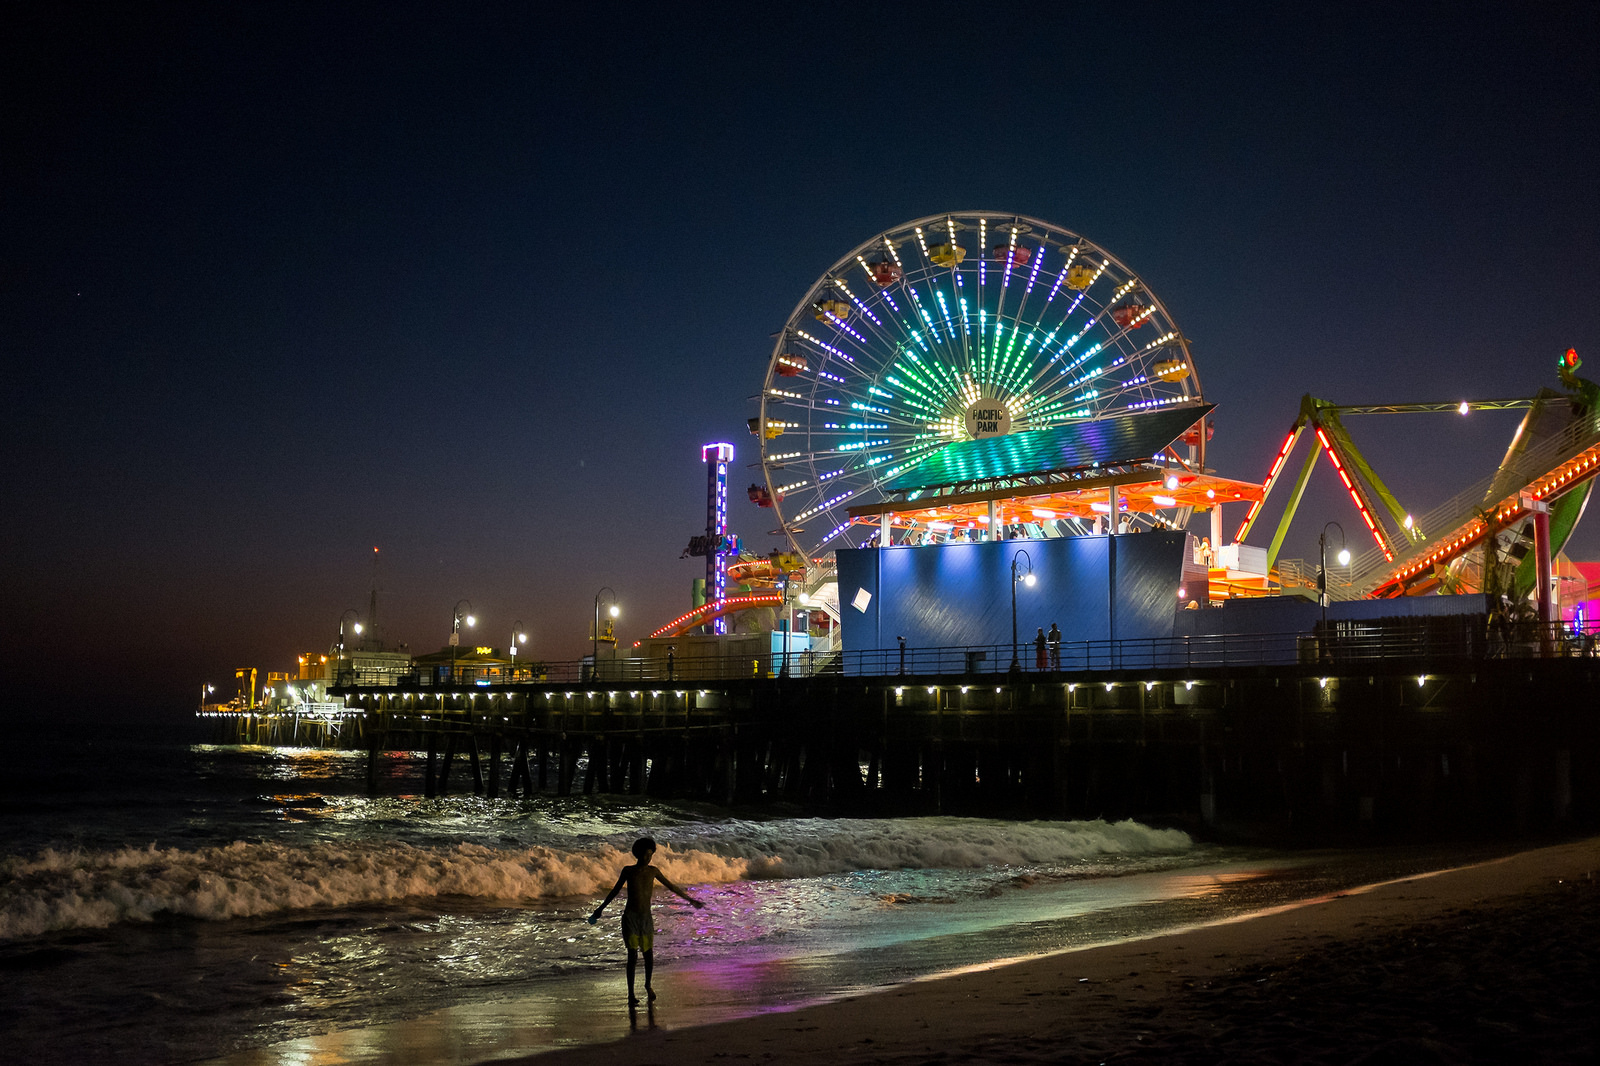 """The night swimmer""  August, 2016. Santa Monica, CA  Fujifilm X100s, 23mm, f/2, 1/70, ISO 6400"